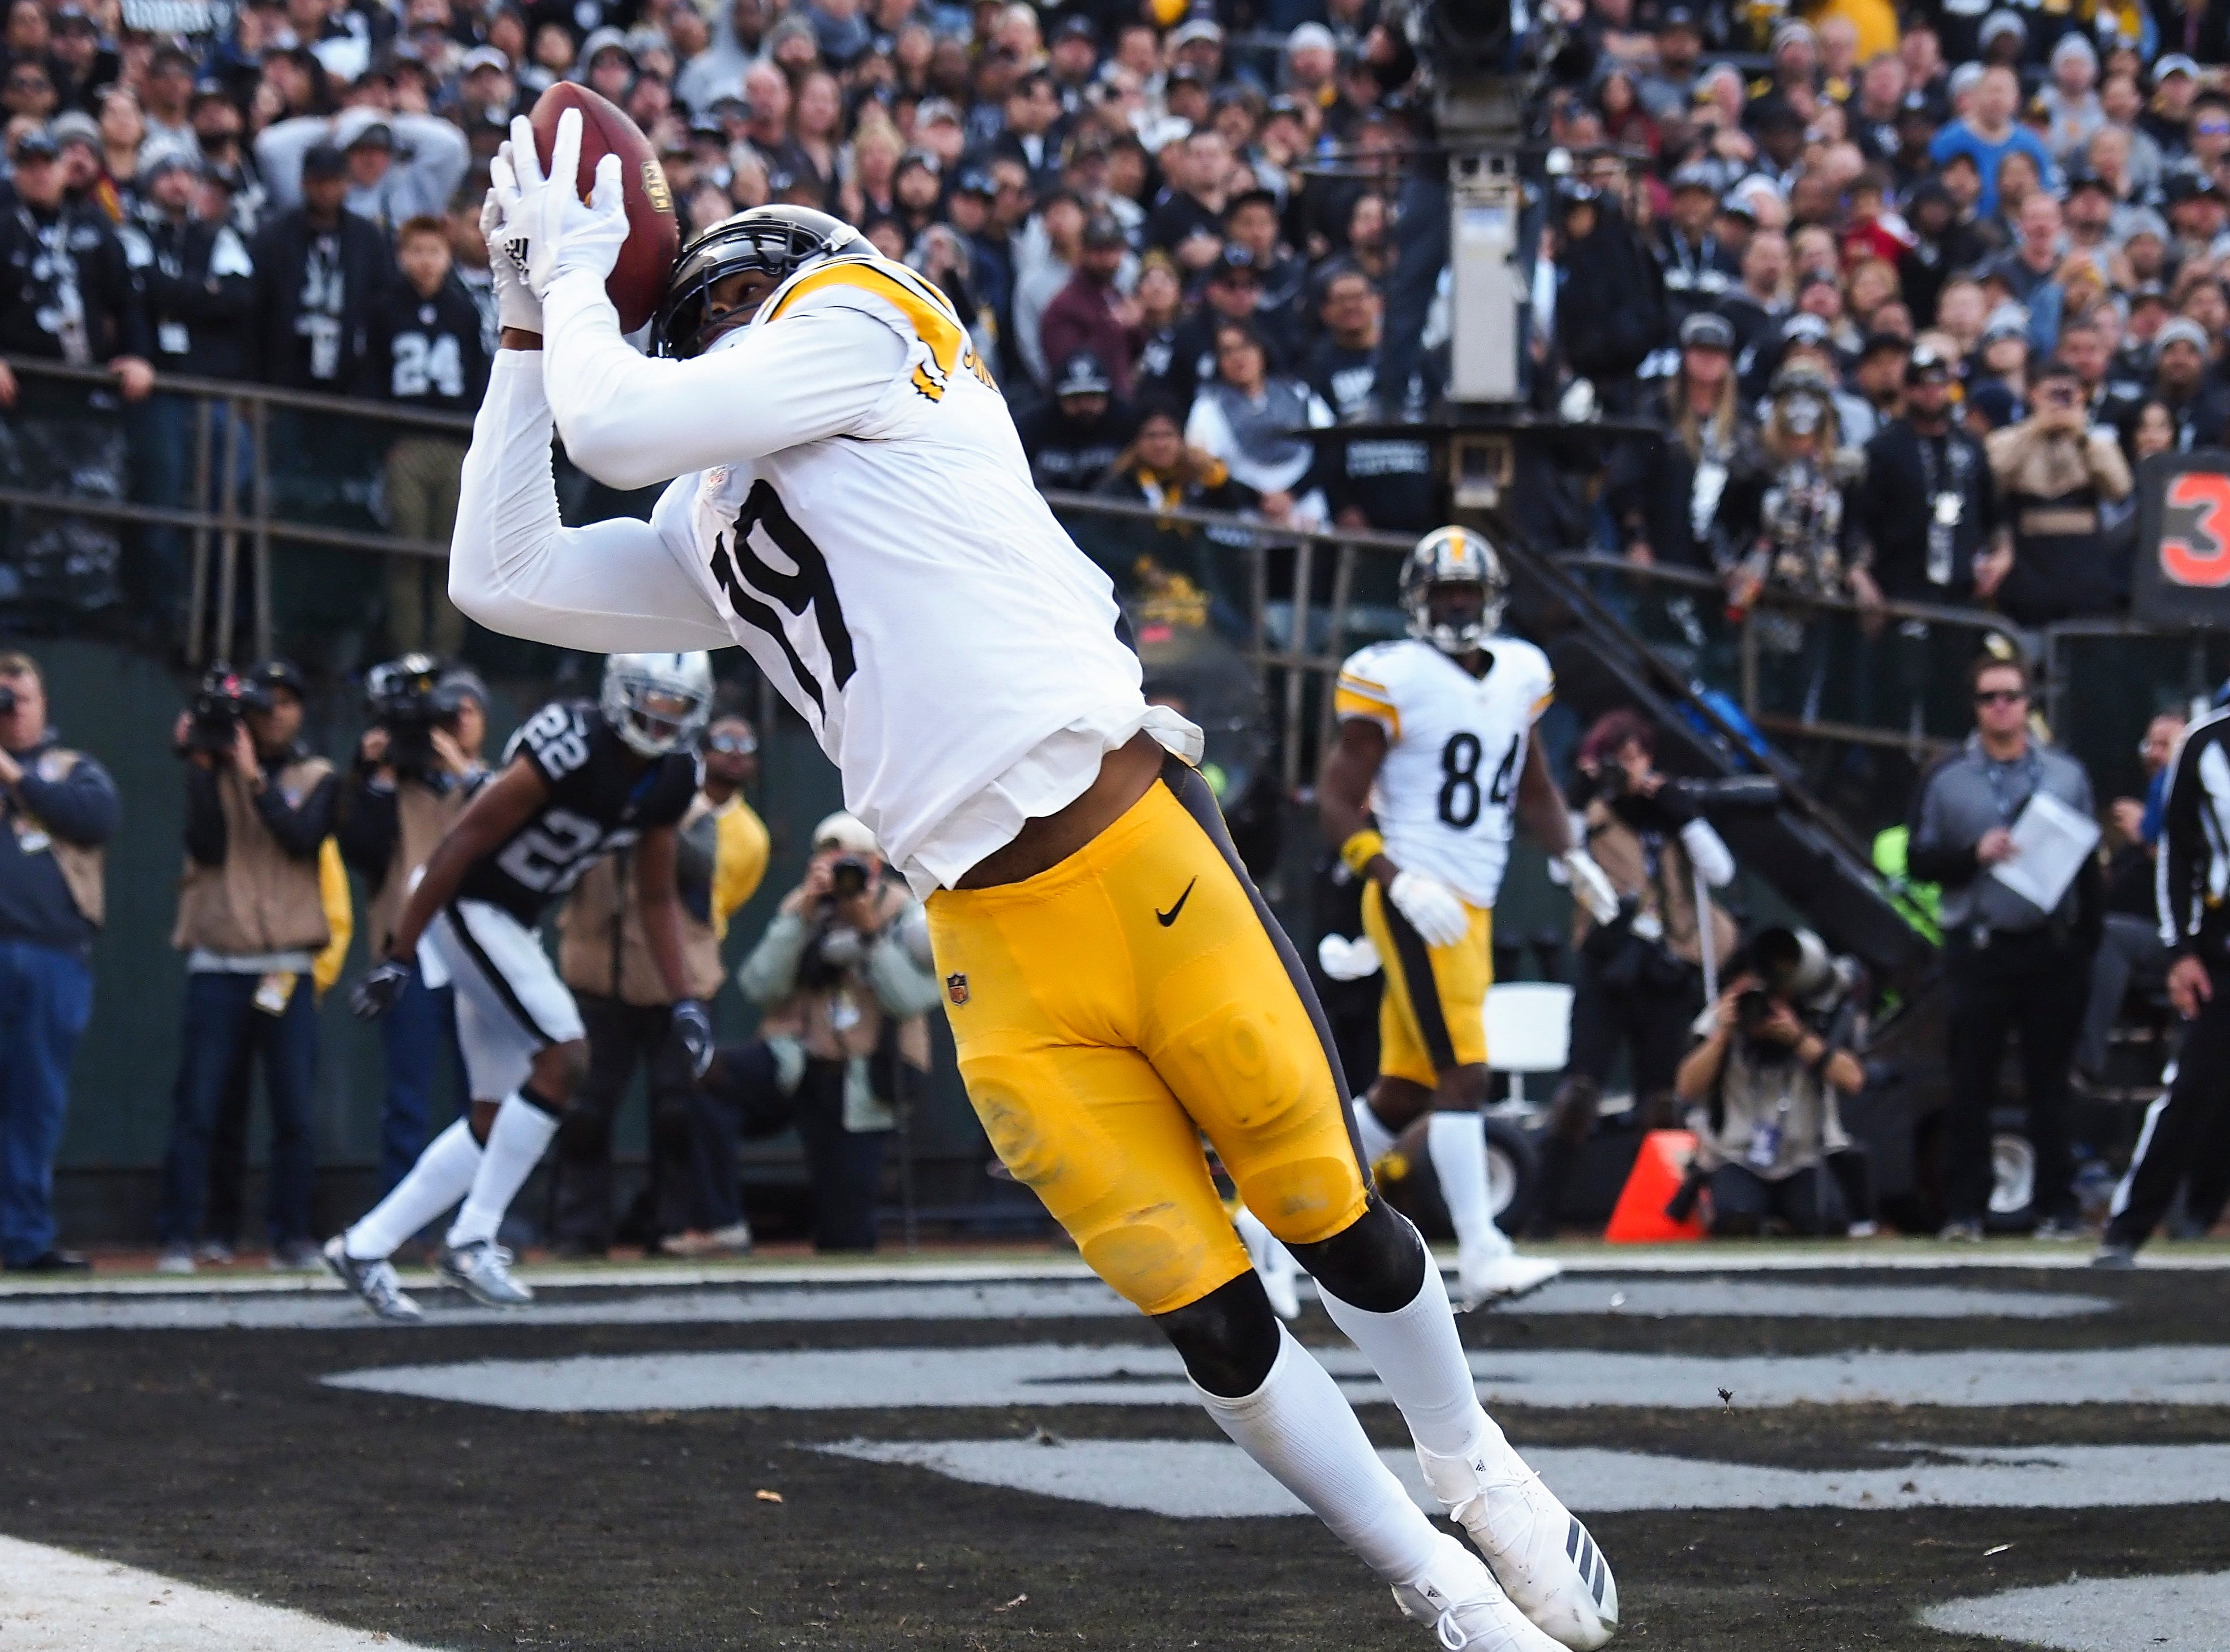 Steelers wide receiver JuJu Smith-Schuster makes a catch in the second quarter against the Raiders.